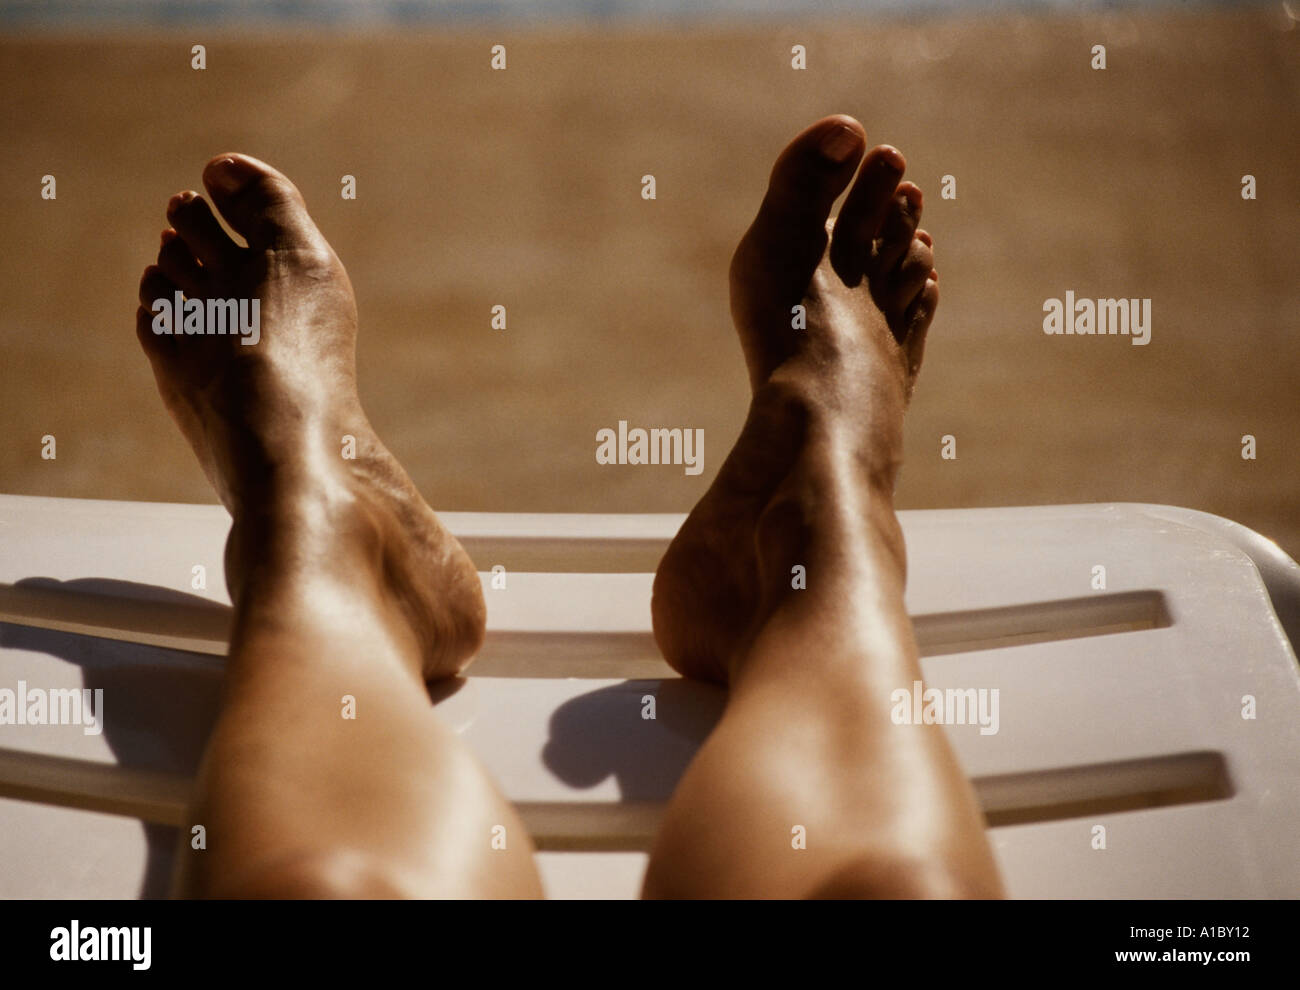 a pair of legs and feet on a sunlounger - Stock Image